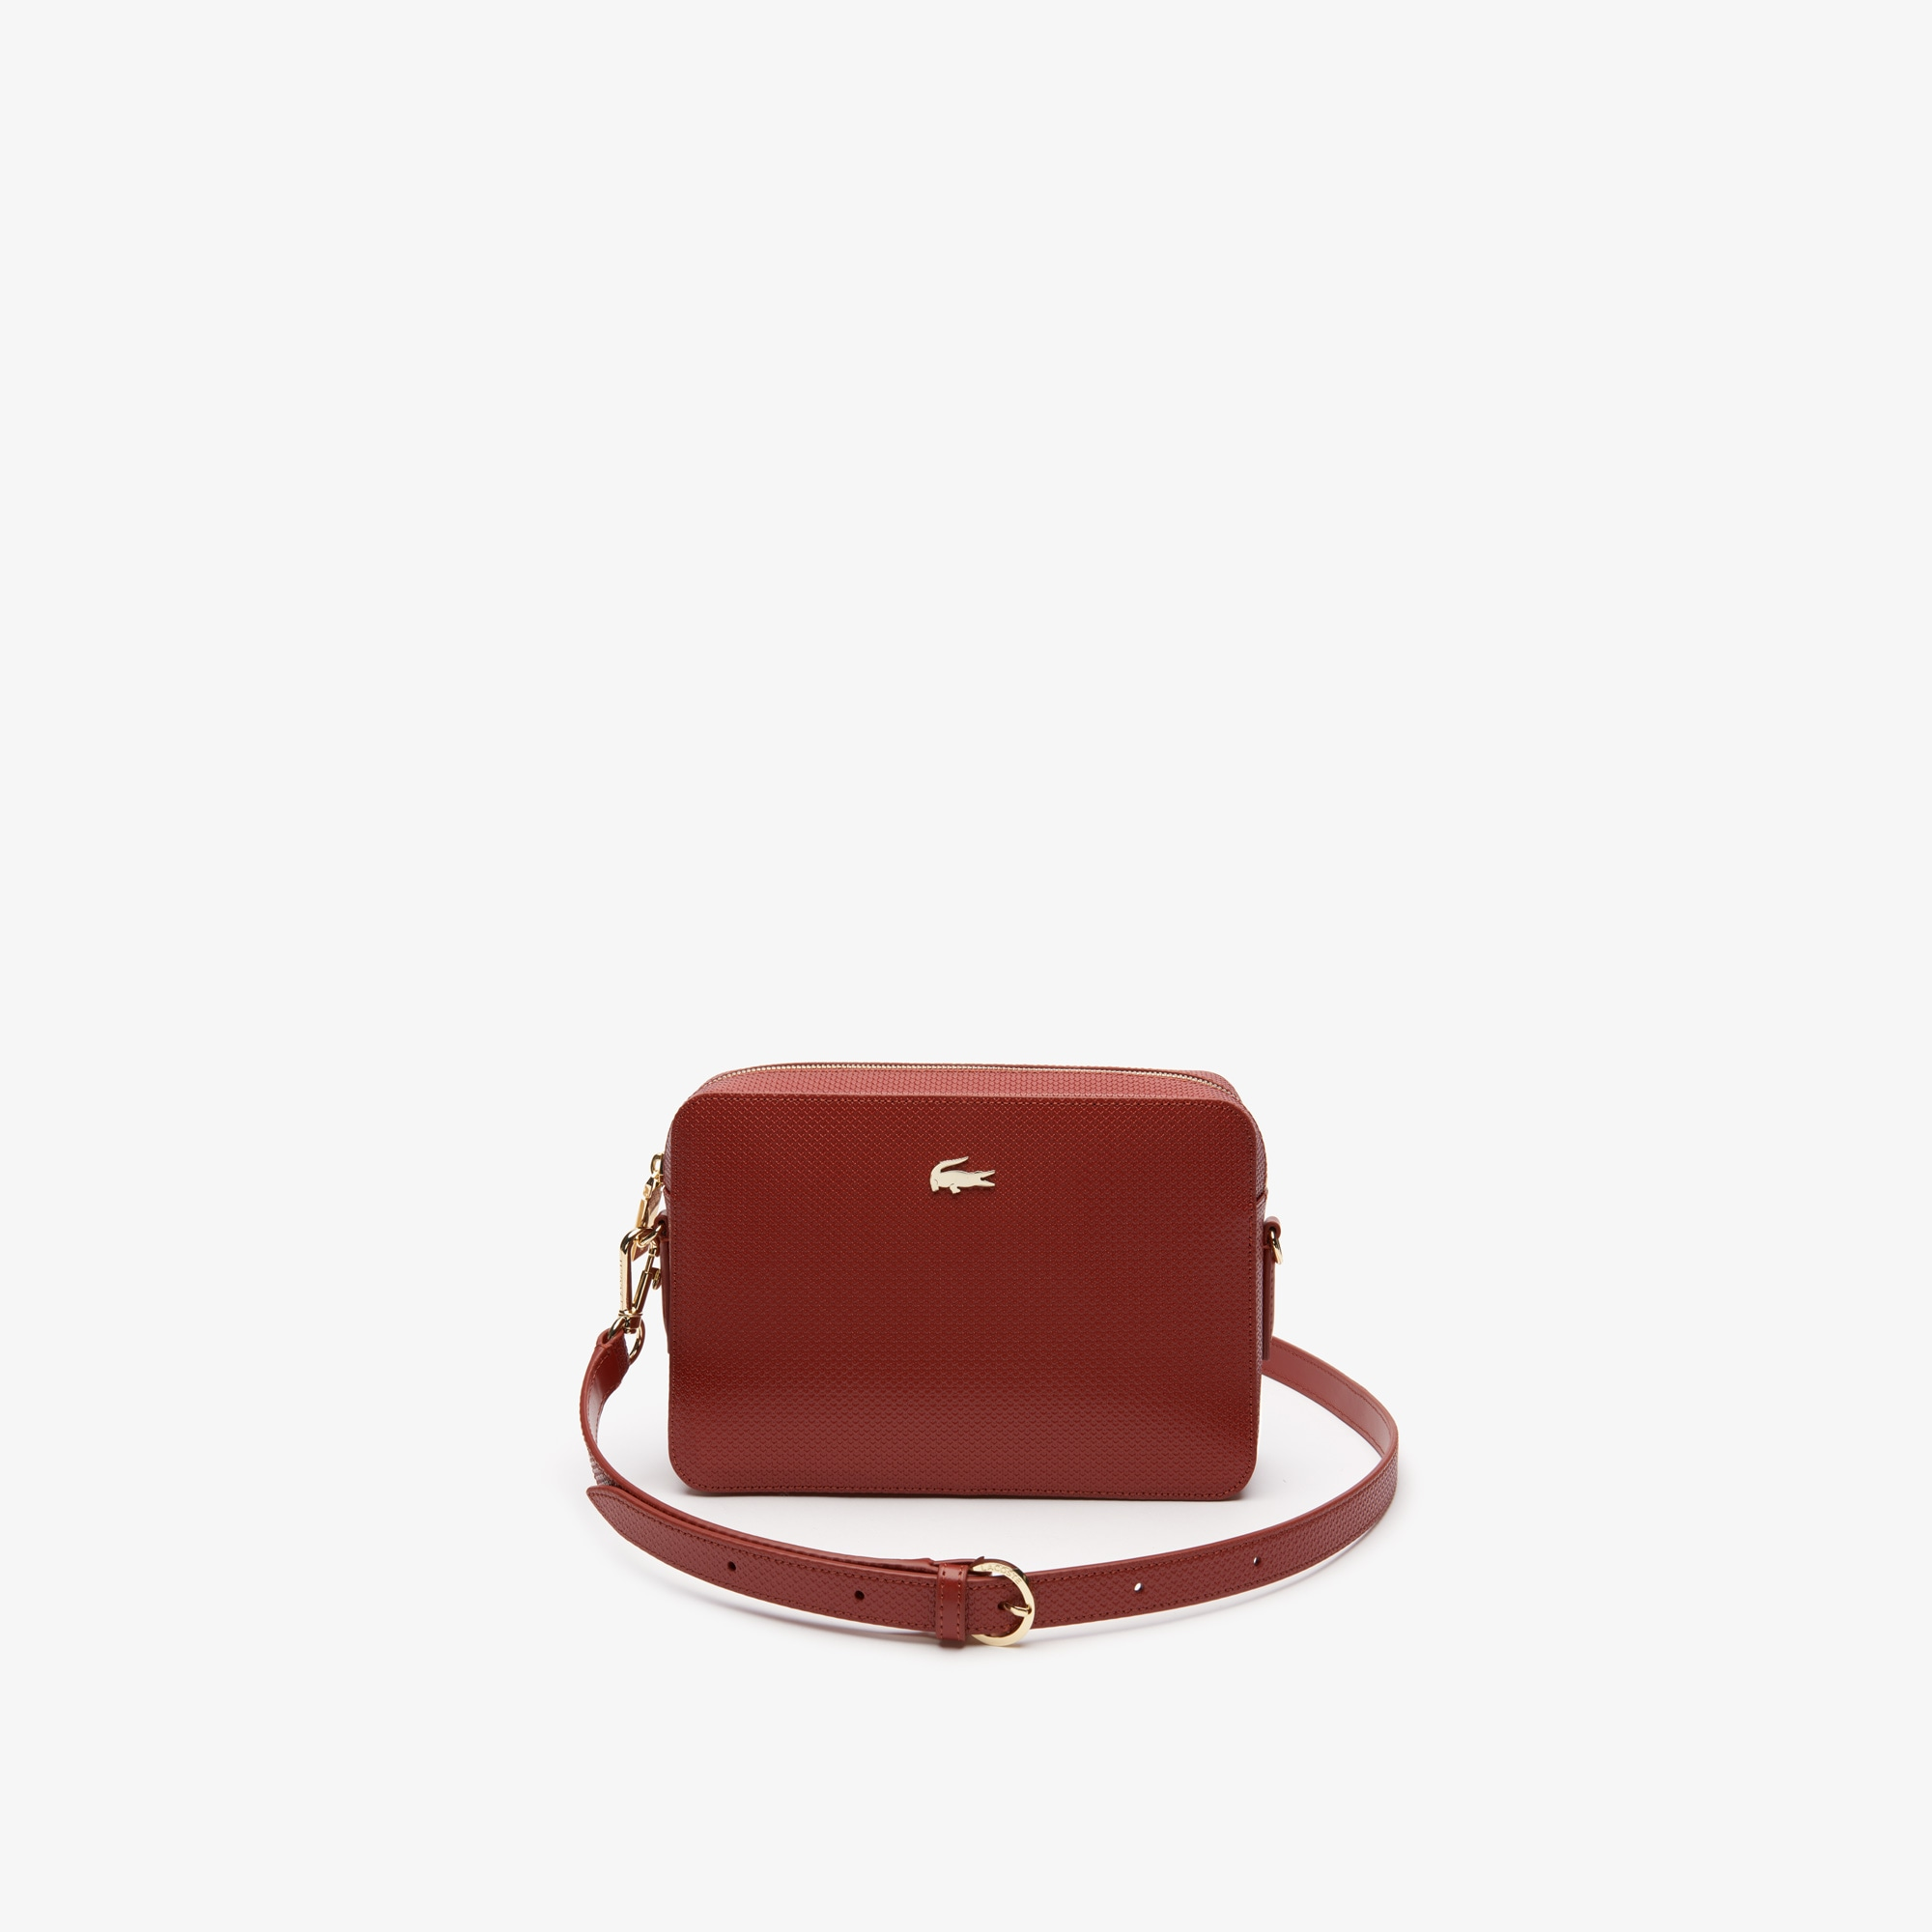 c62fd7403dc Women's Chantaco Piqué Leather Square Shoulder Bag | LACOSTE